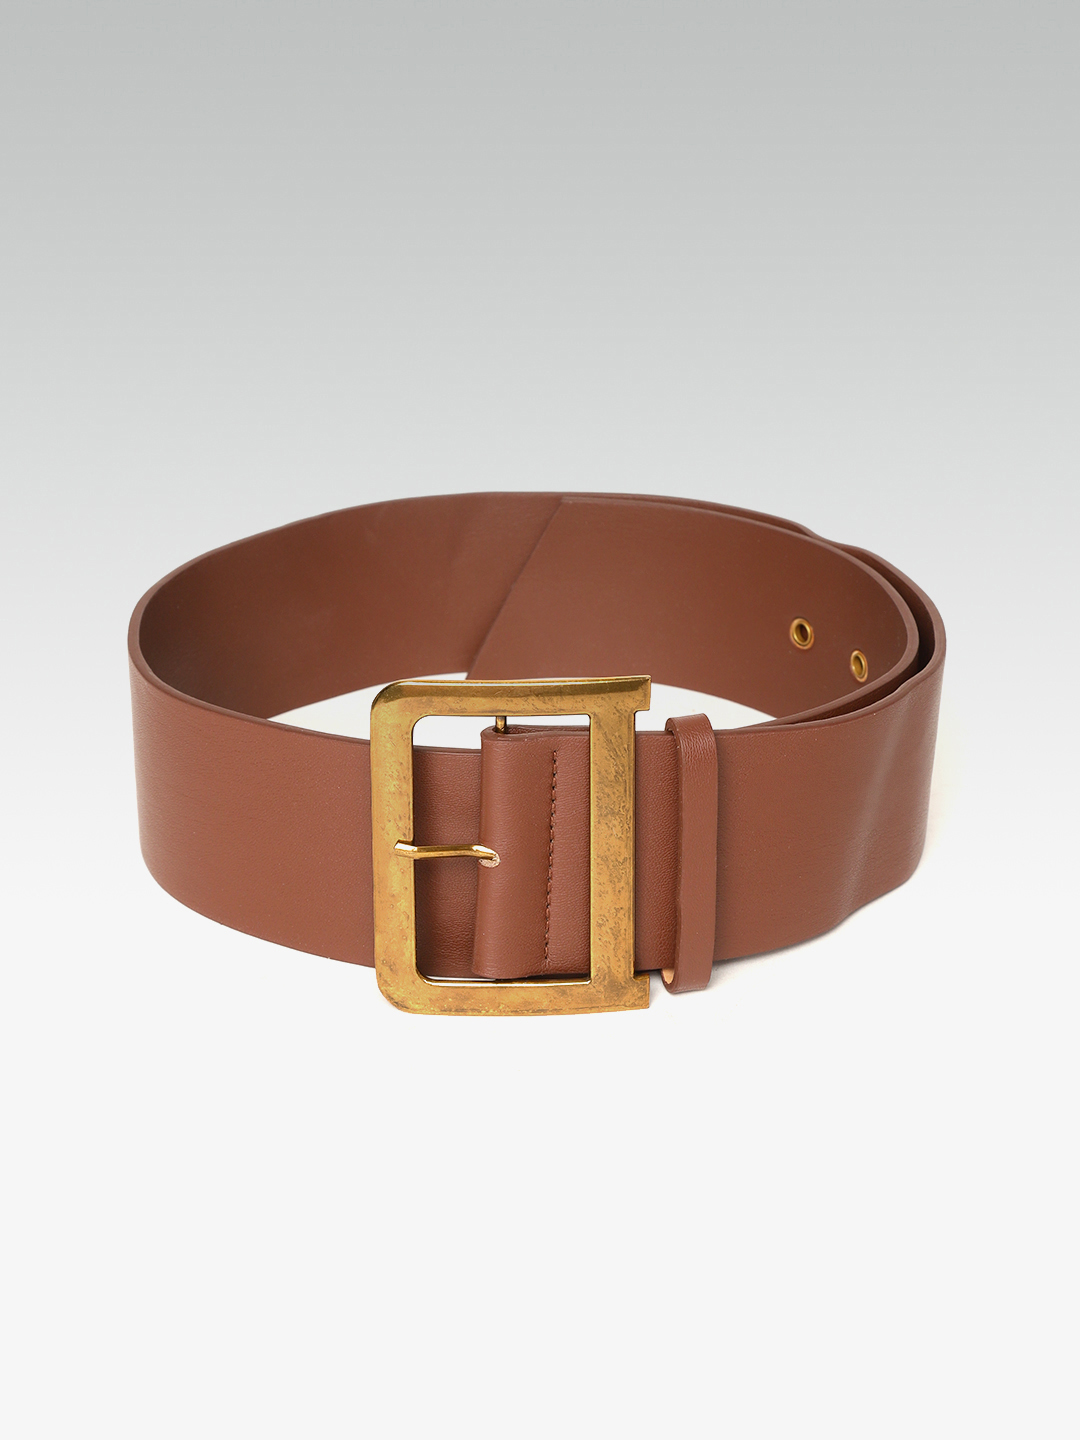 Belts-The Style Wave Brown Belt3